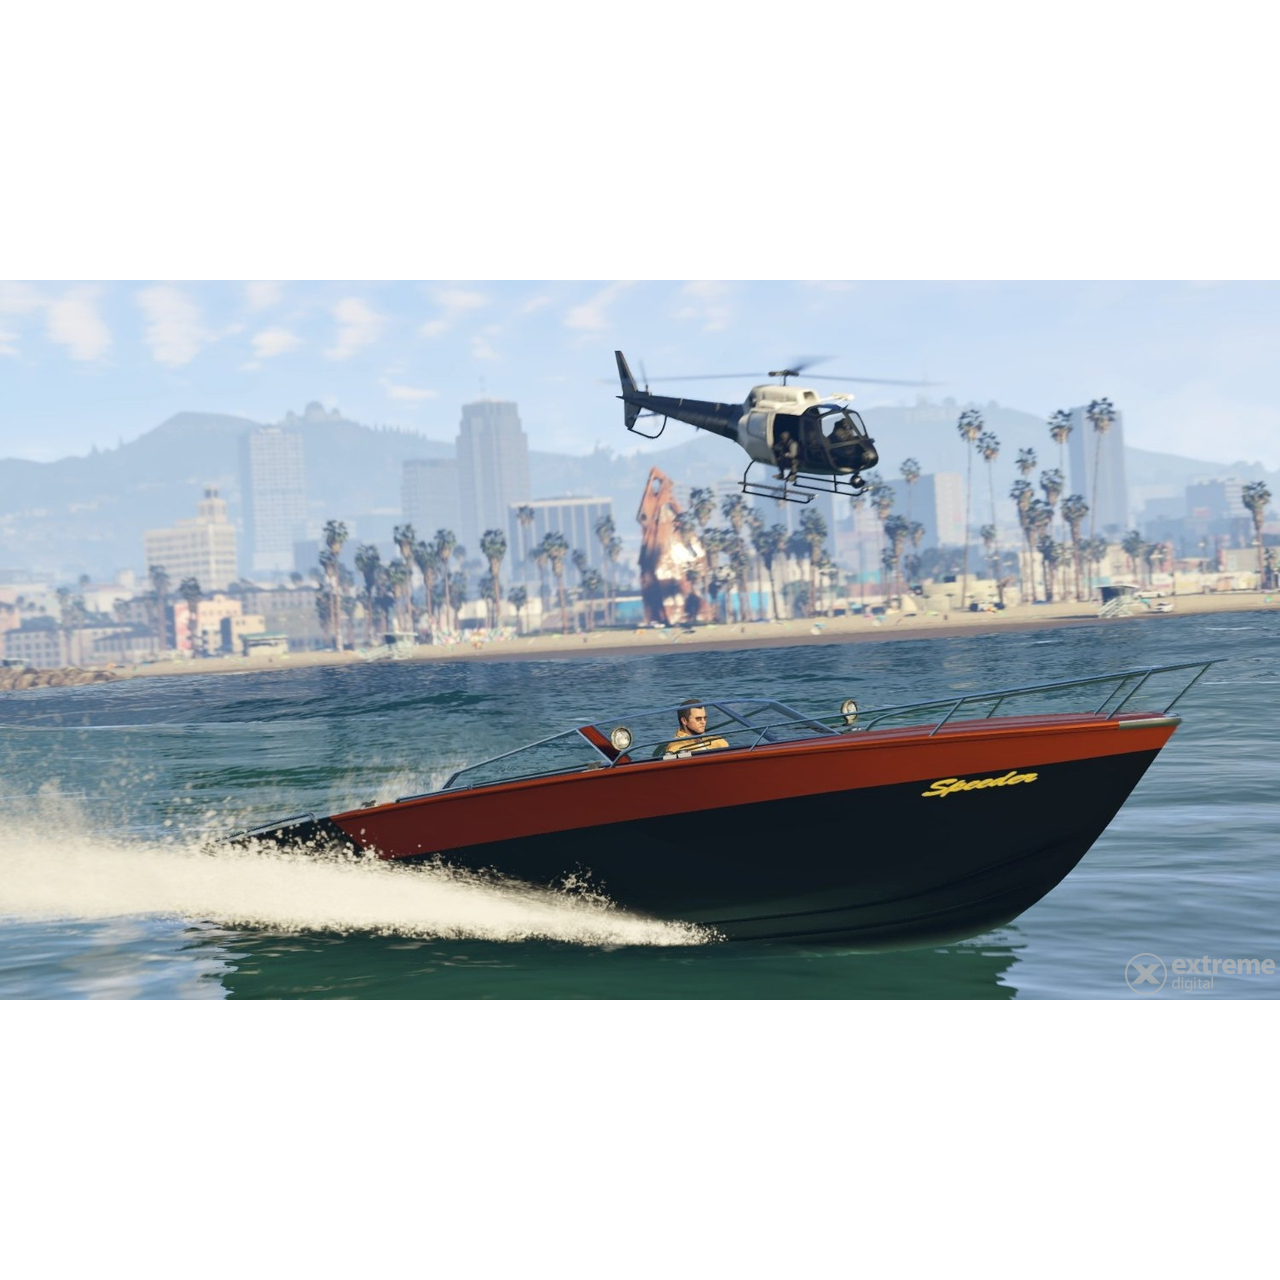 grand-theft-auto-v-en-gta-v-ps4-jatekszoftver_4843e15a.jpg